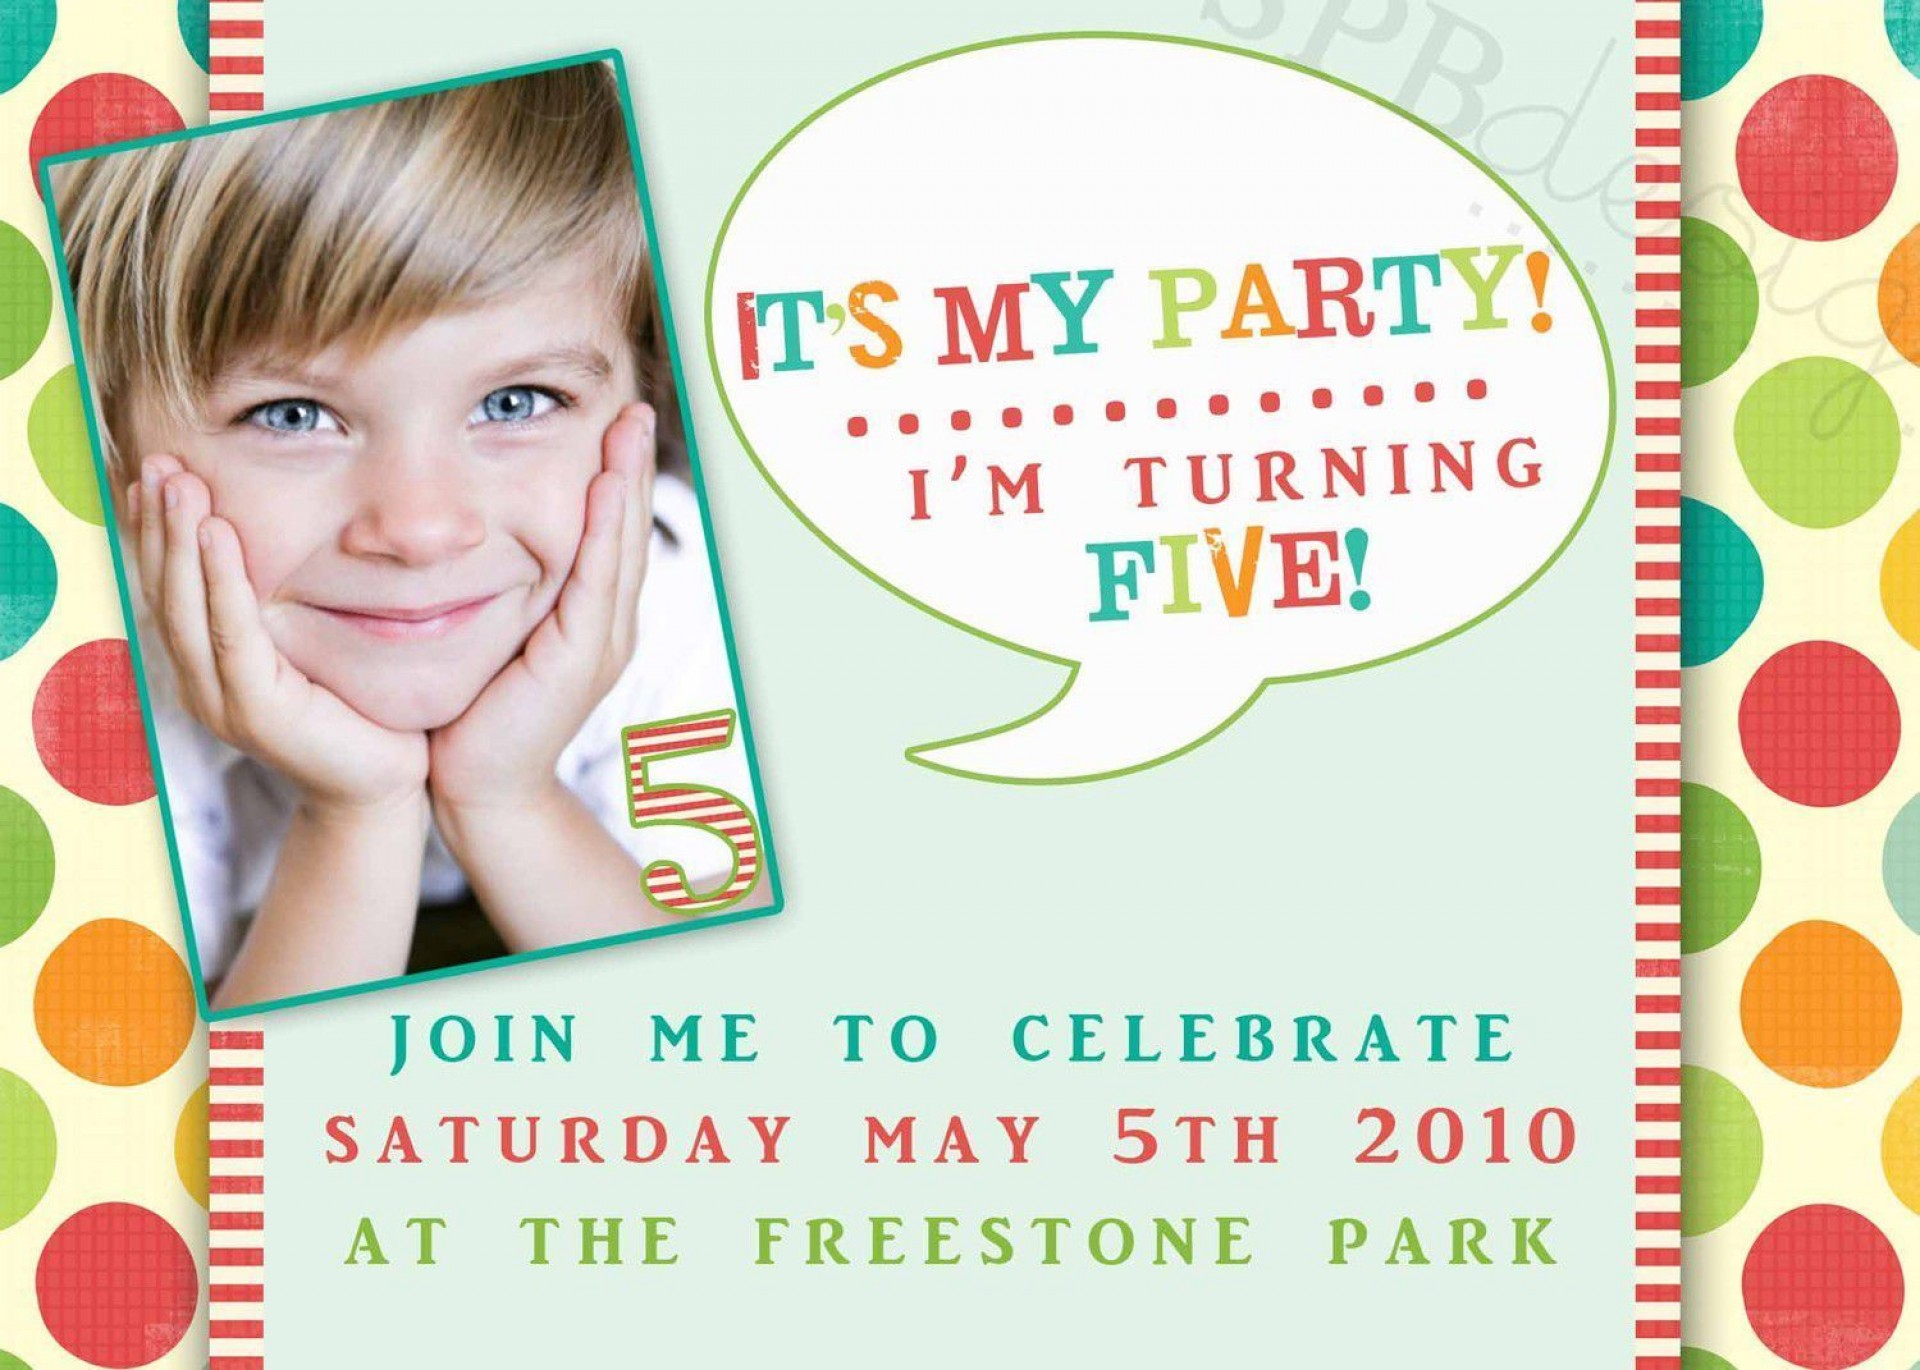 000 Magnificent Birthday Invitation Wording Sample 5 Year Old Highest Clarity 1920